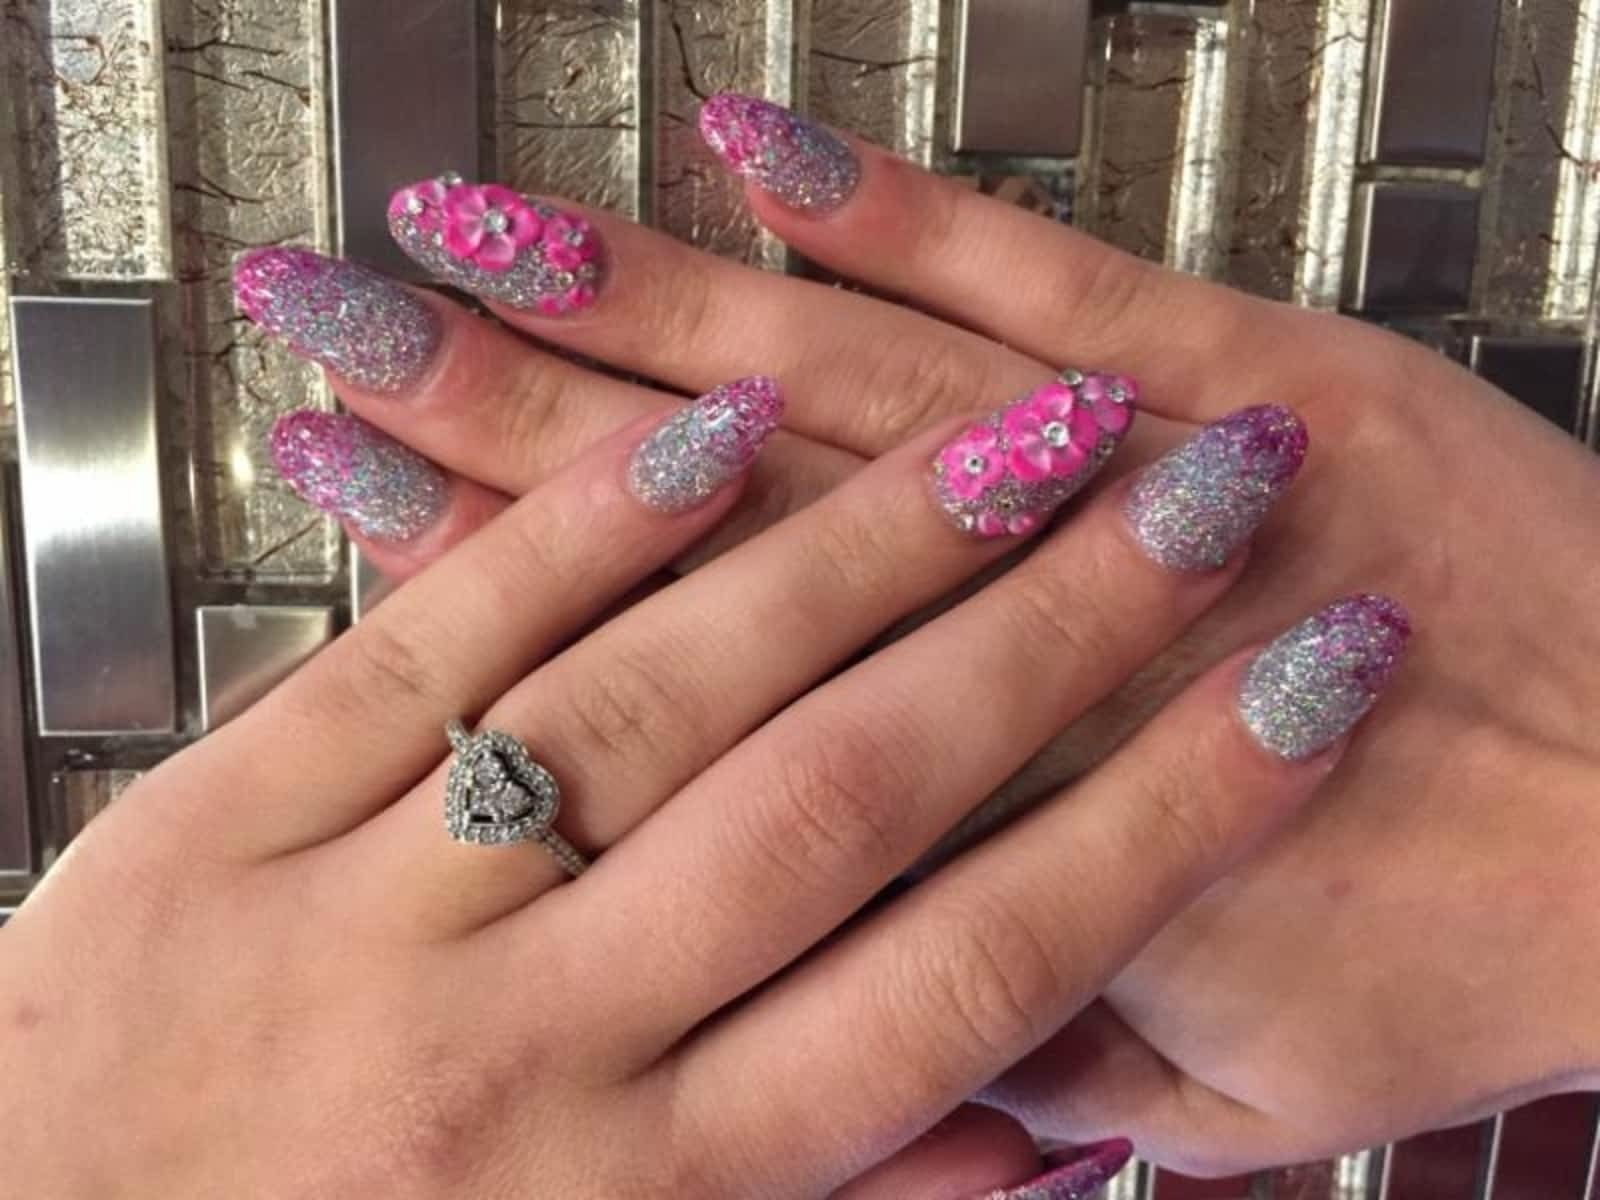 3D Nails Spa - Opening Hours - 110-8850 Walnut Grove Dr, Langley, BC